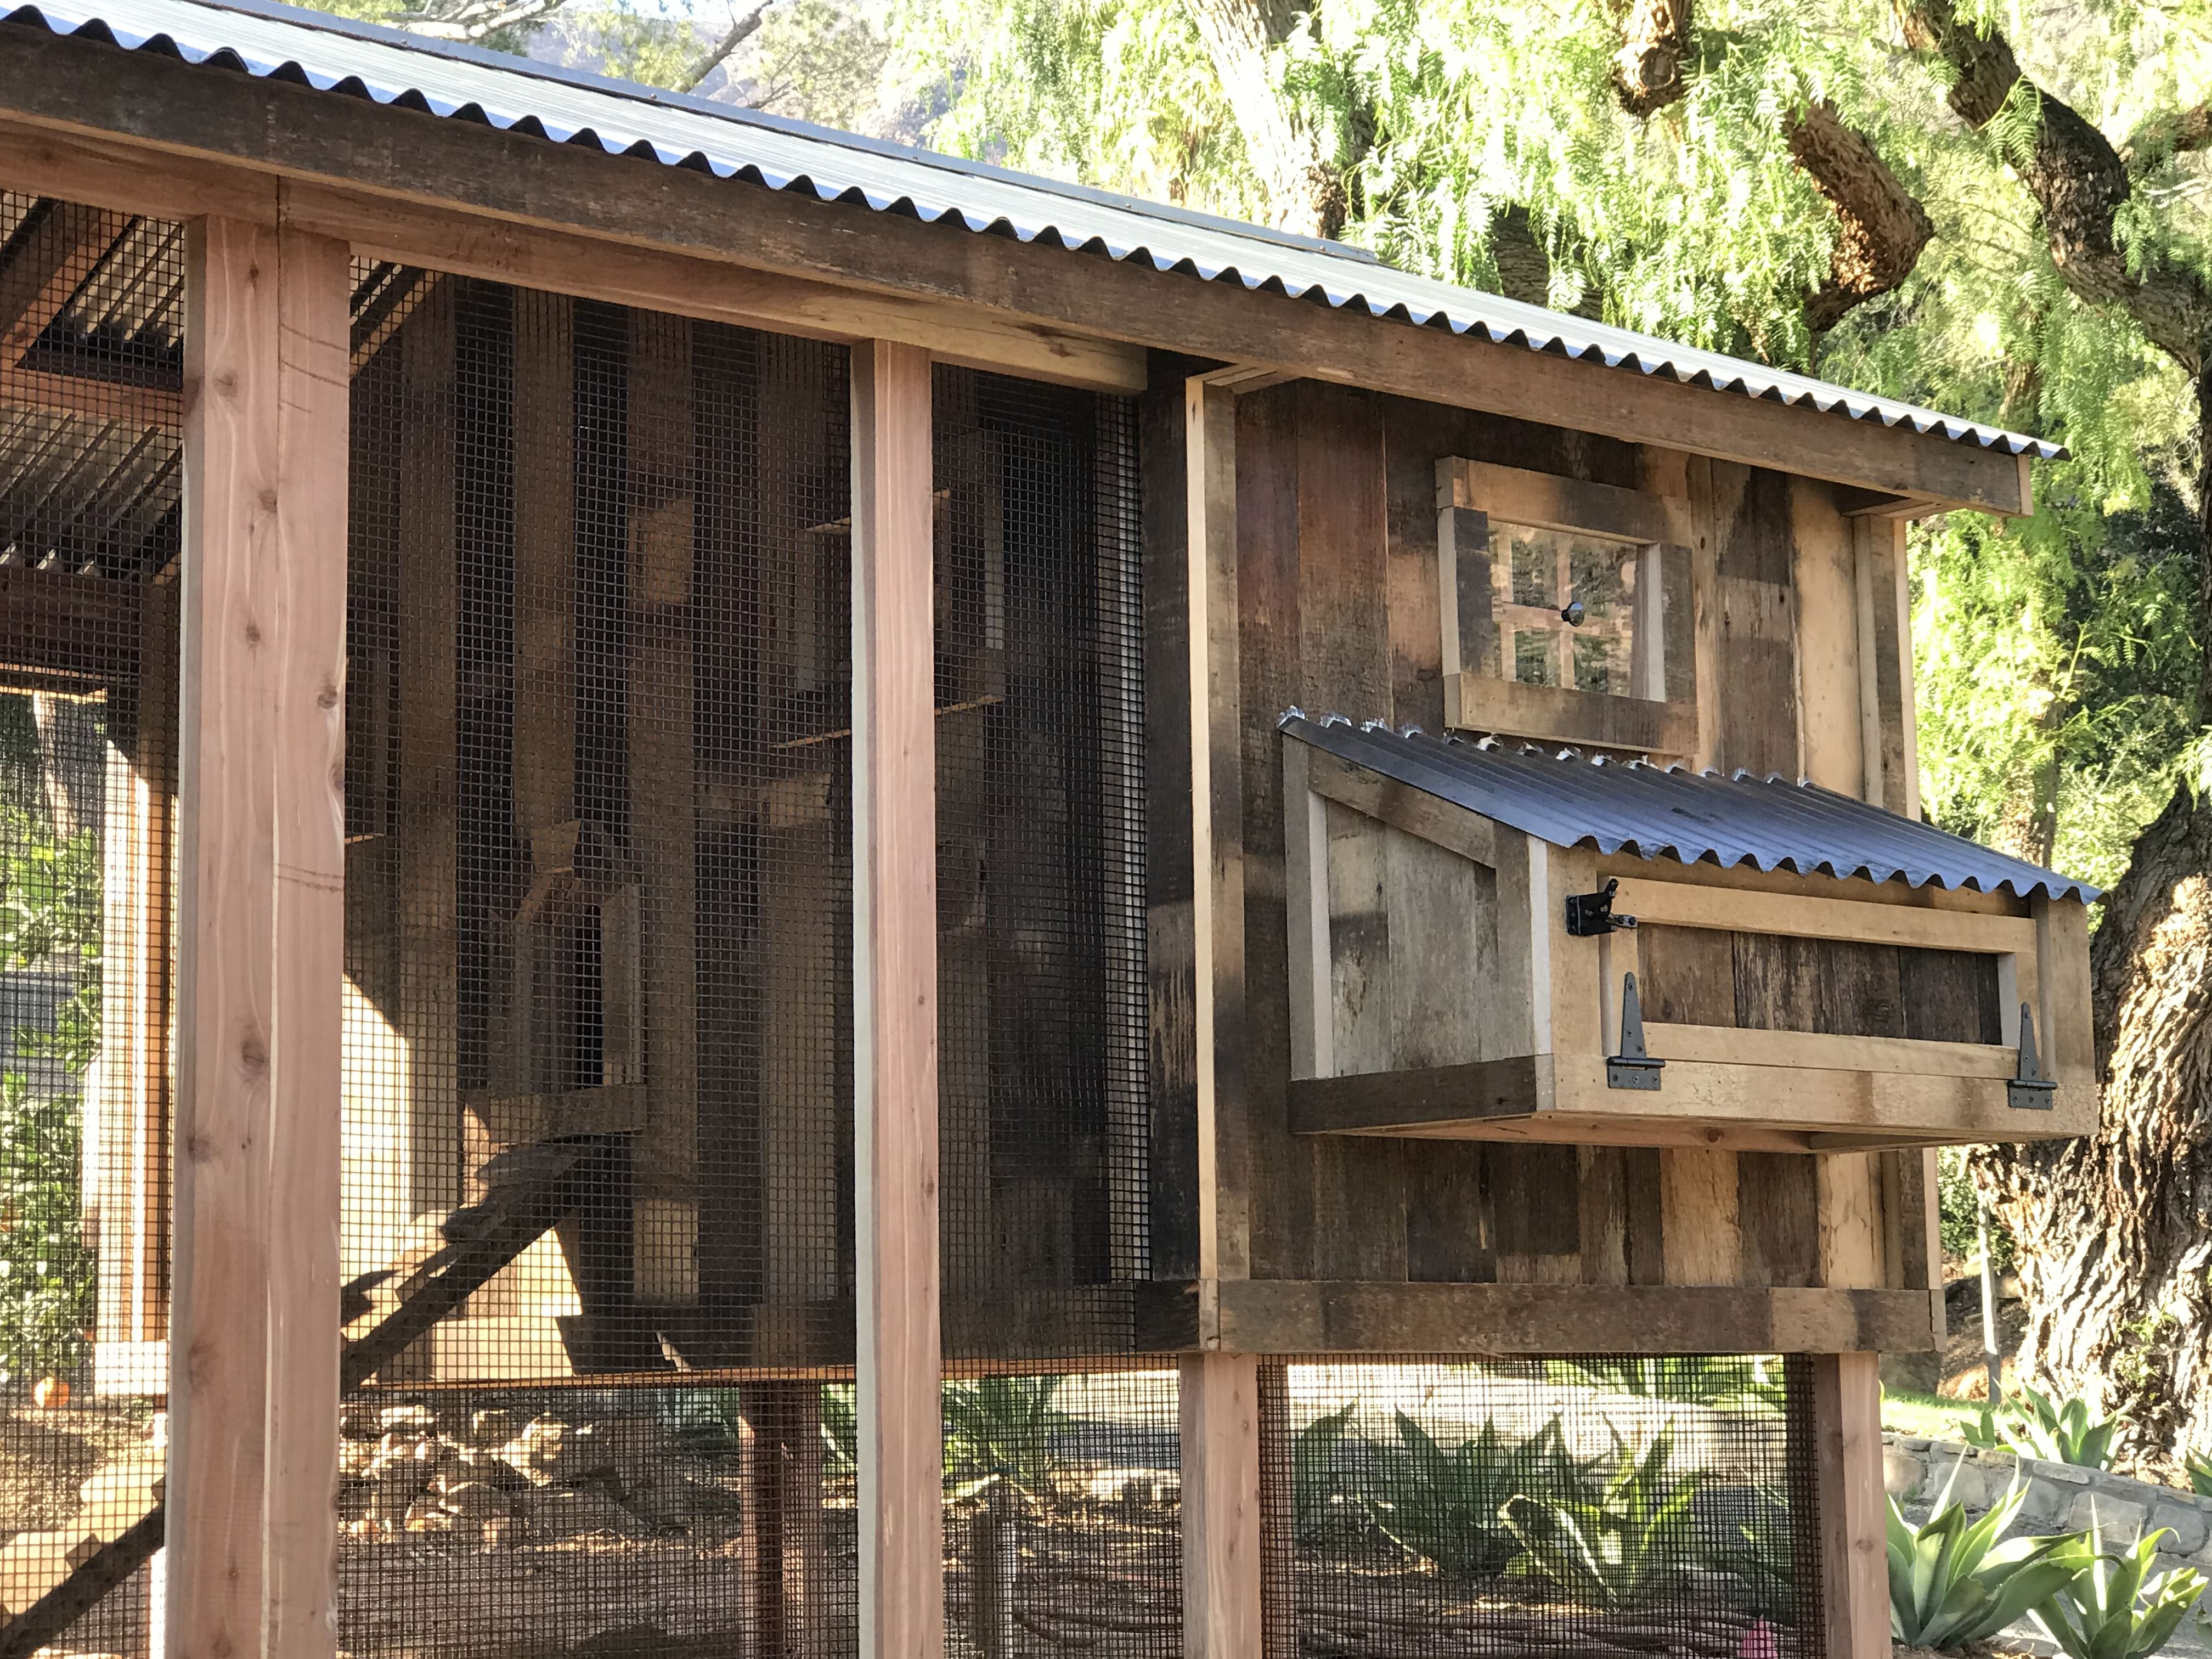 Red cedar reclaimed barn wood coop with saltbox roof in Ojai, CA